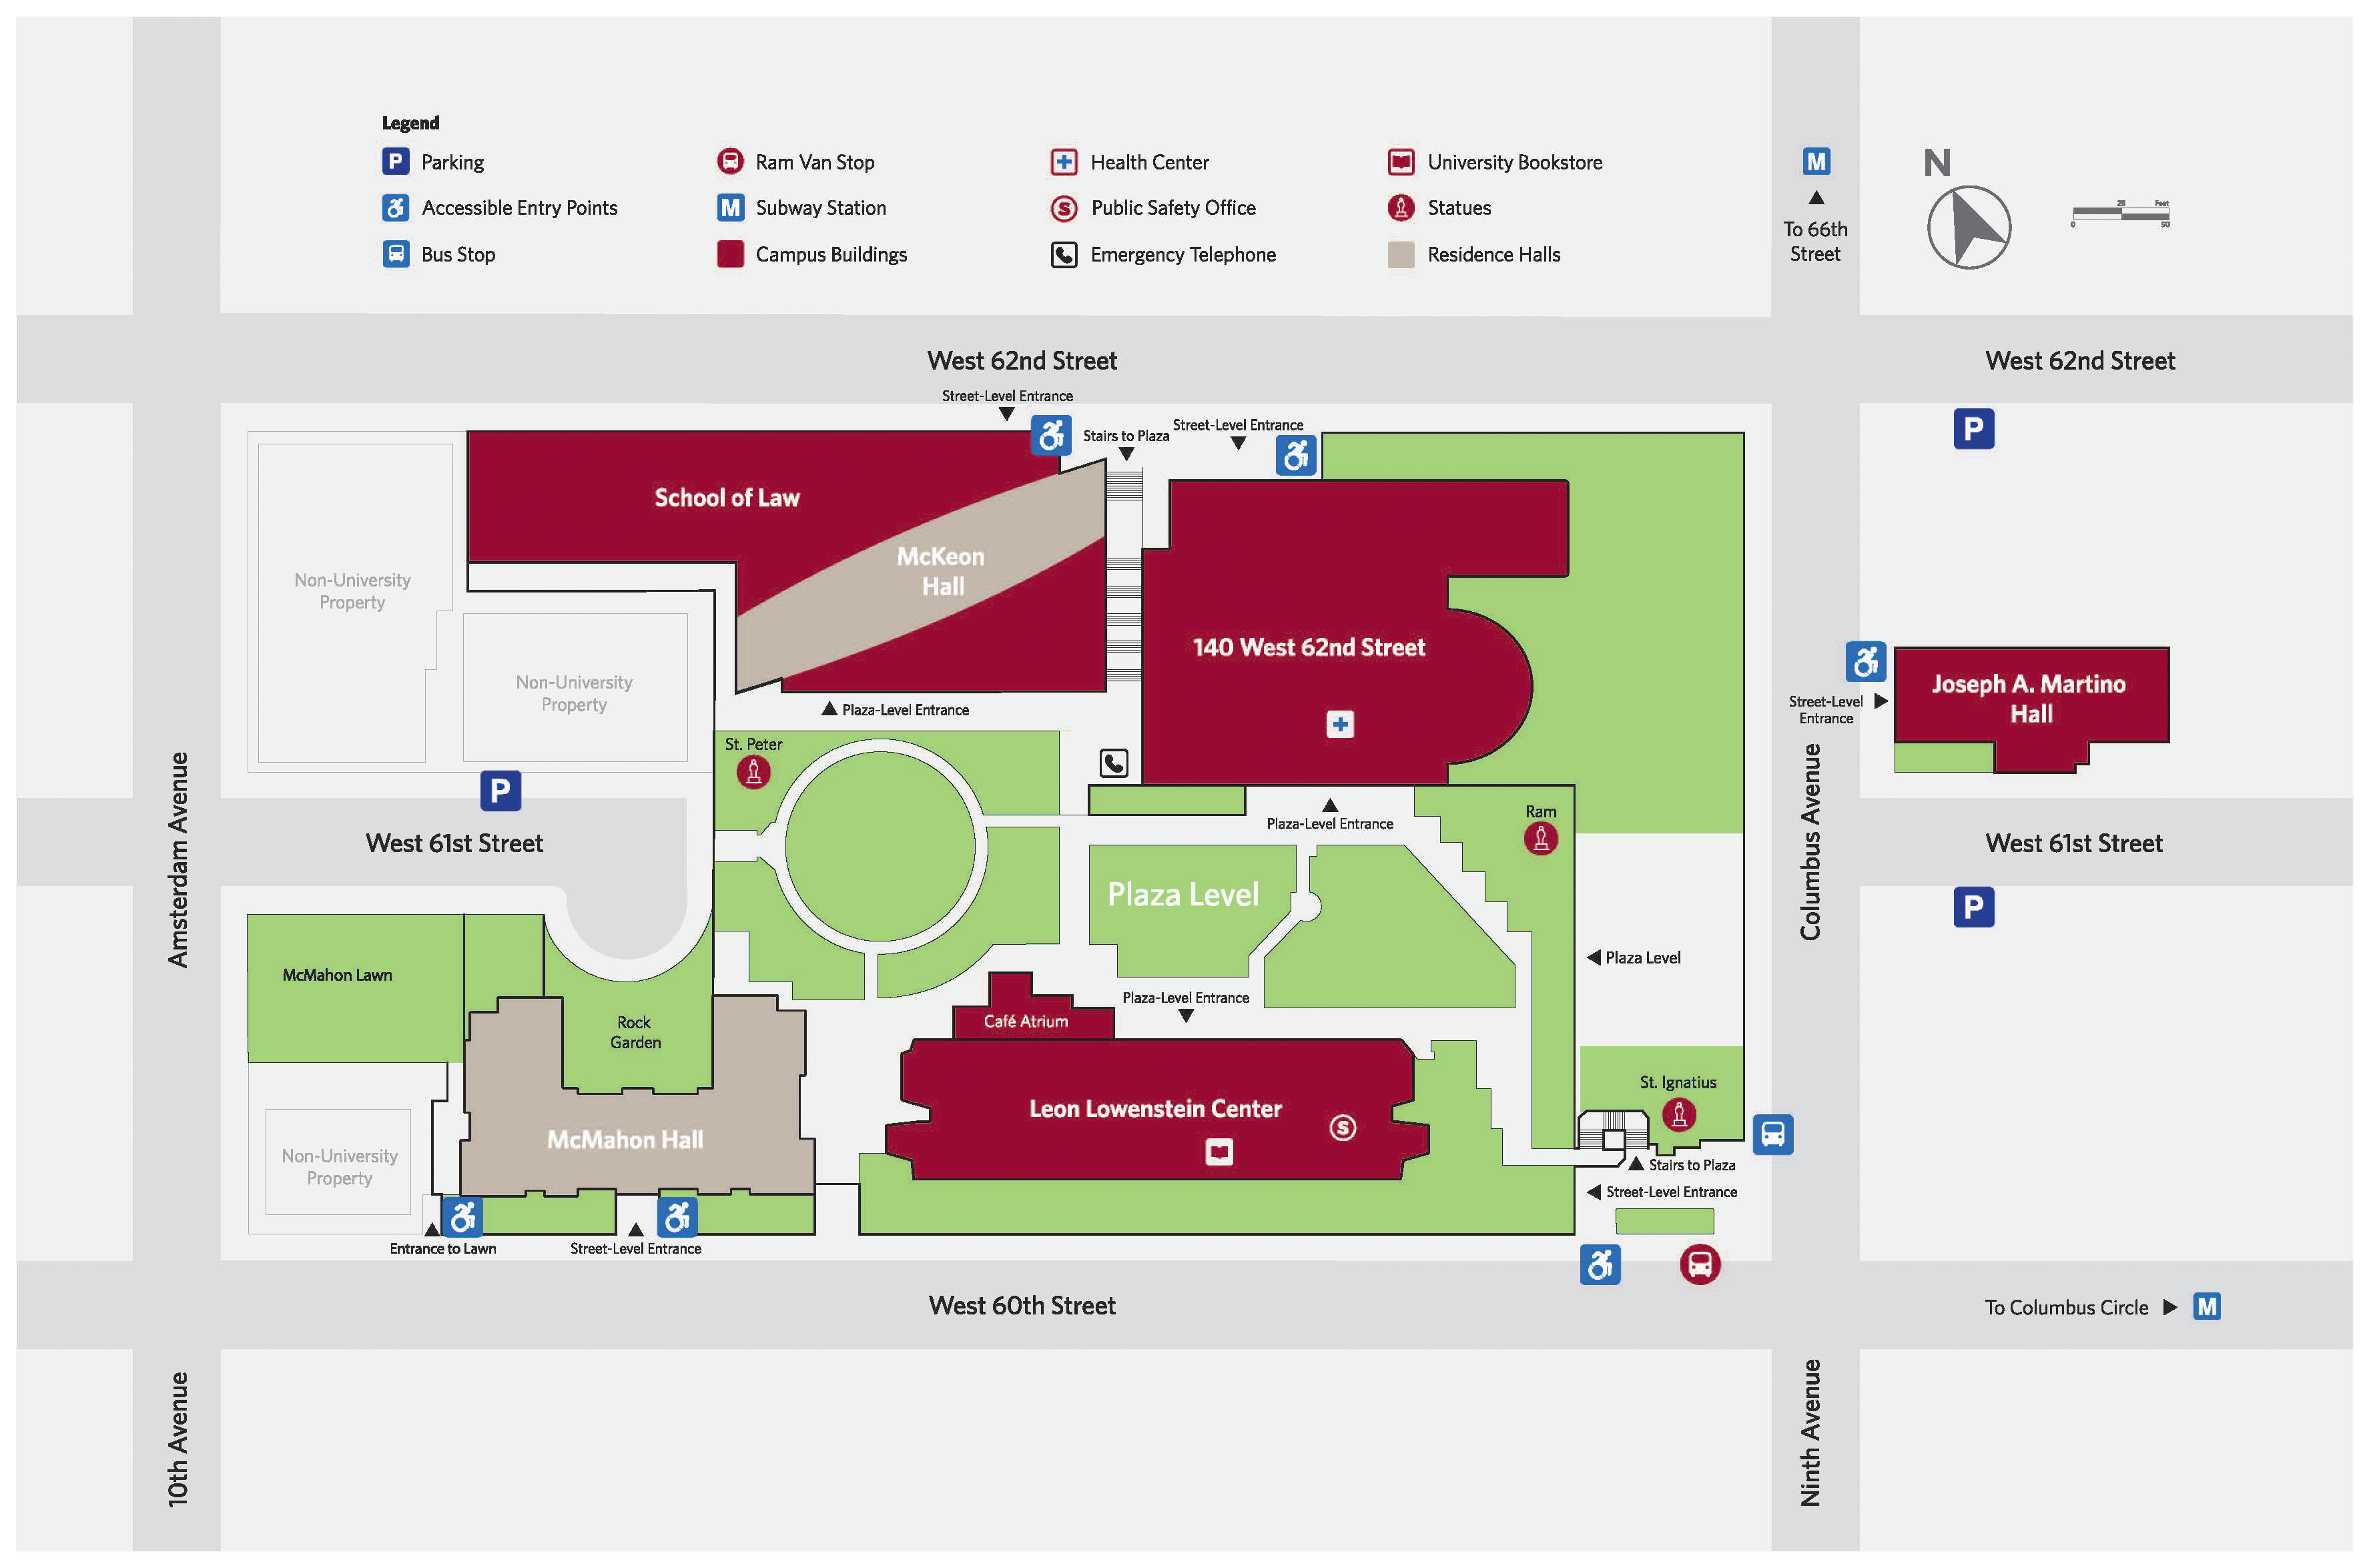 Map of Fordham's Lincoln Center campus consisting of the buildings McMahon Hall, Leon Lowenstein Center, Joseph A. Martino Hall, 140 West 62nd Street, McKeon Hall, and the School of Law. Outdoor locations include McMahon Lawn, the Rock Garden, and Leon Lowenstein Plaza. Indication of Parking, Accessible Entry Points, Bus Stop, Ram Van Stop, Subway Stations, Campus Buildings, Health Center, Public Safety Office, Emergency Telephone, University Bookstore, Statues, and Residence Halls.